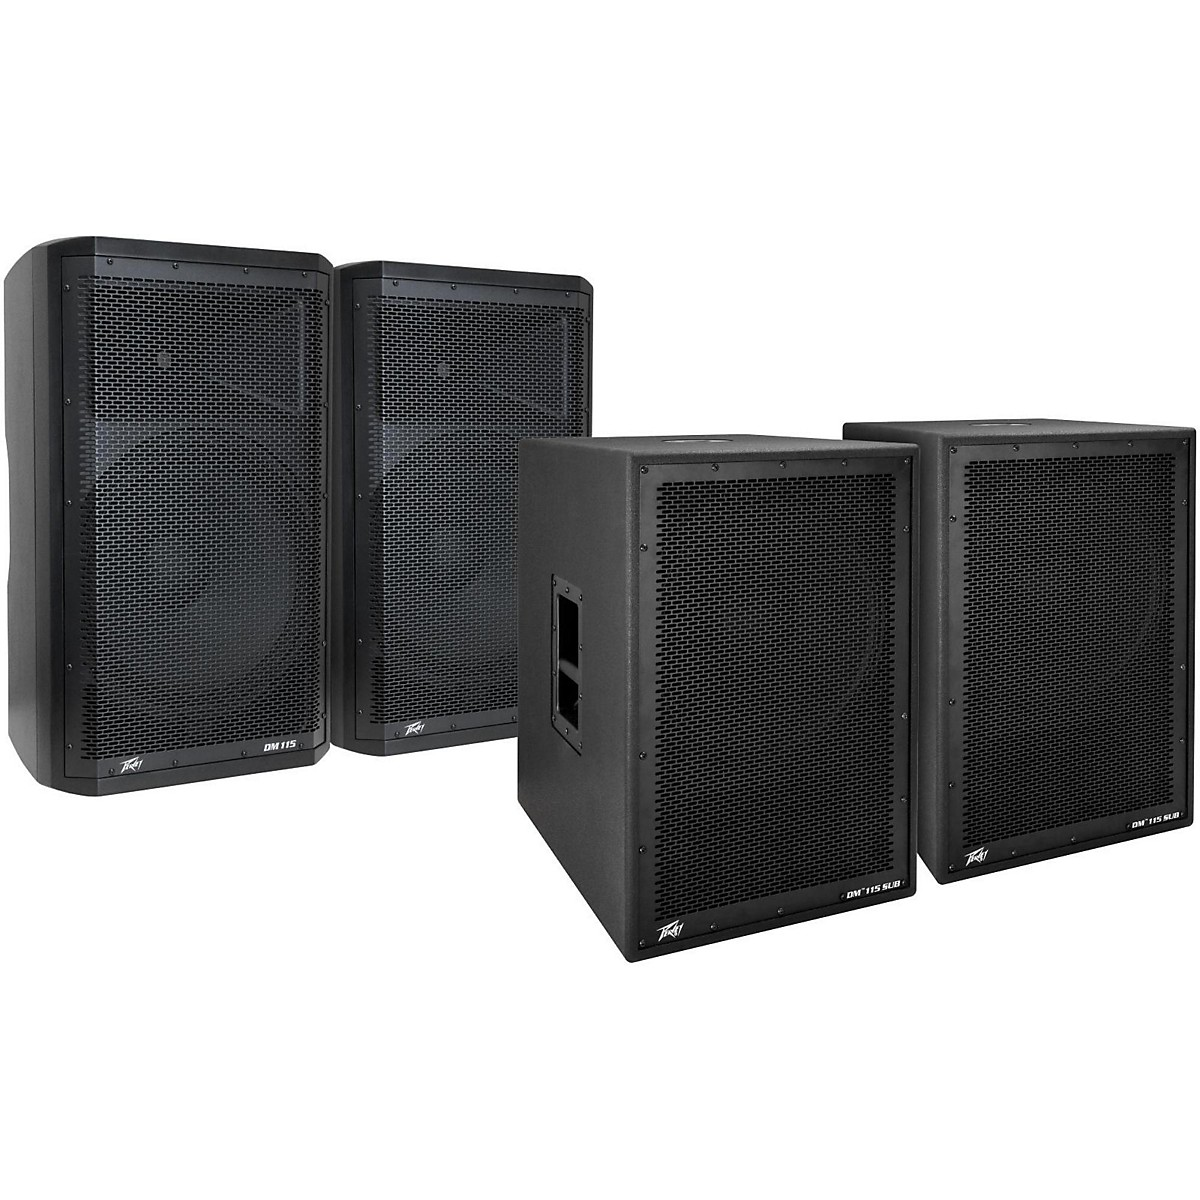 Peavey Dark Matter DM115 Powered Speaker and Sub Pair